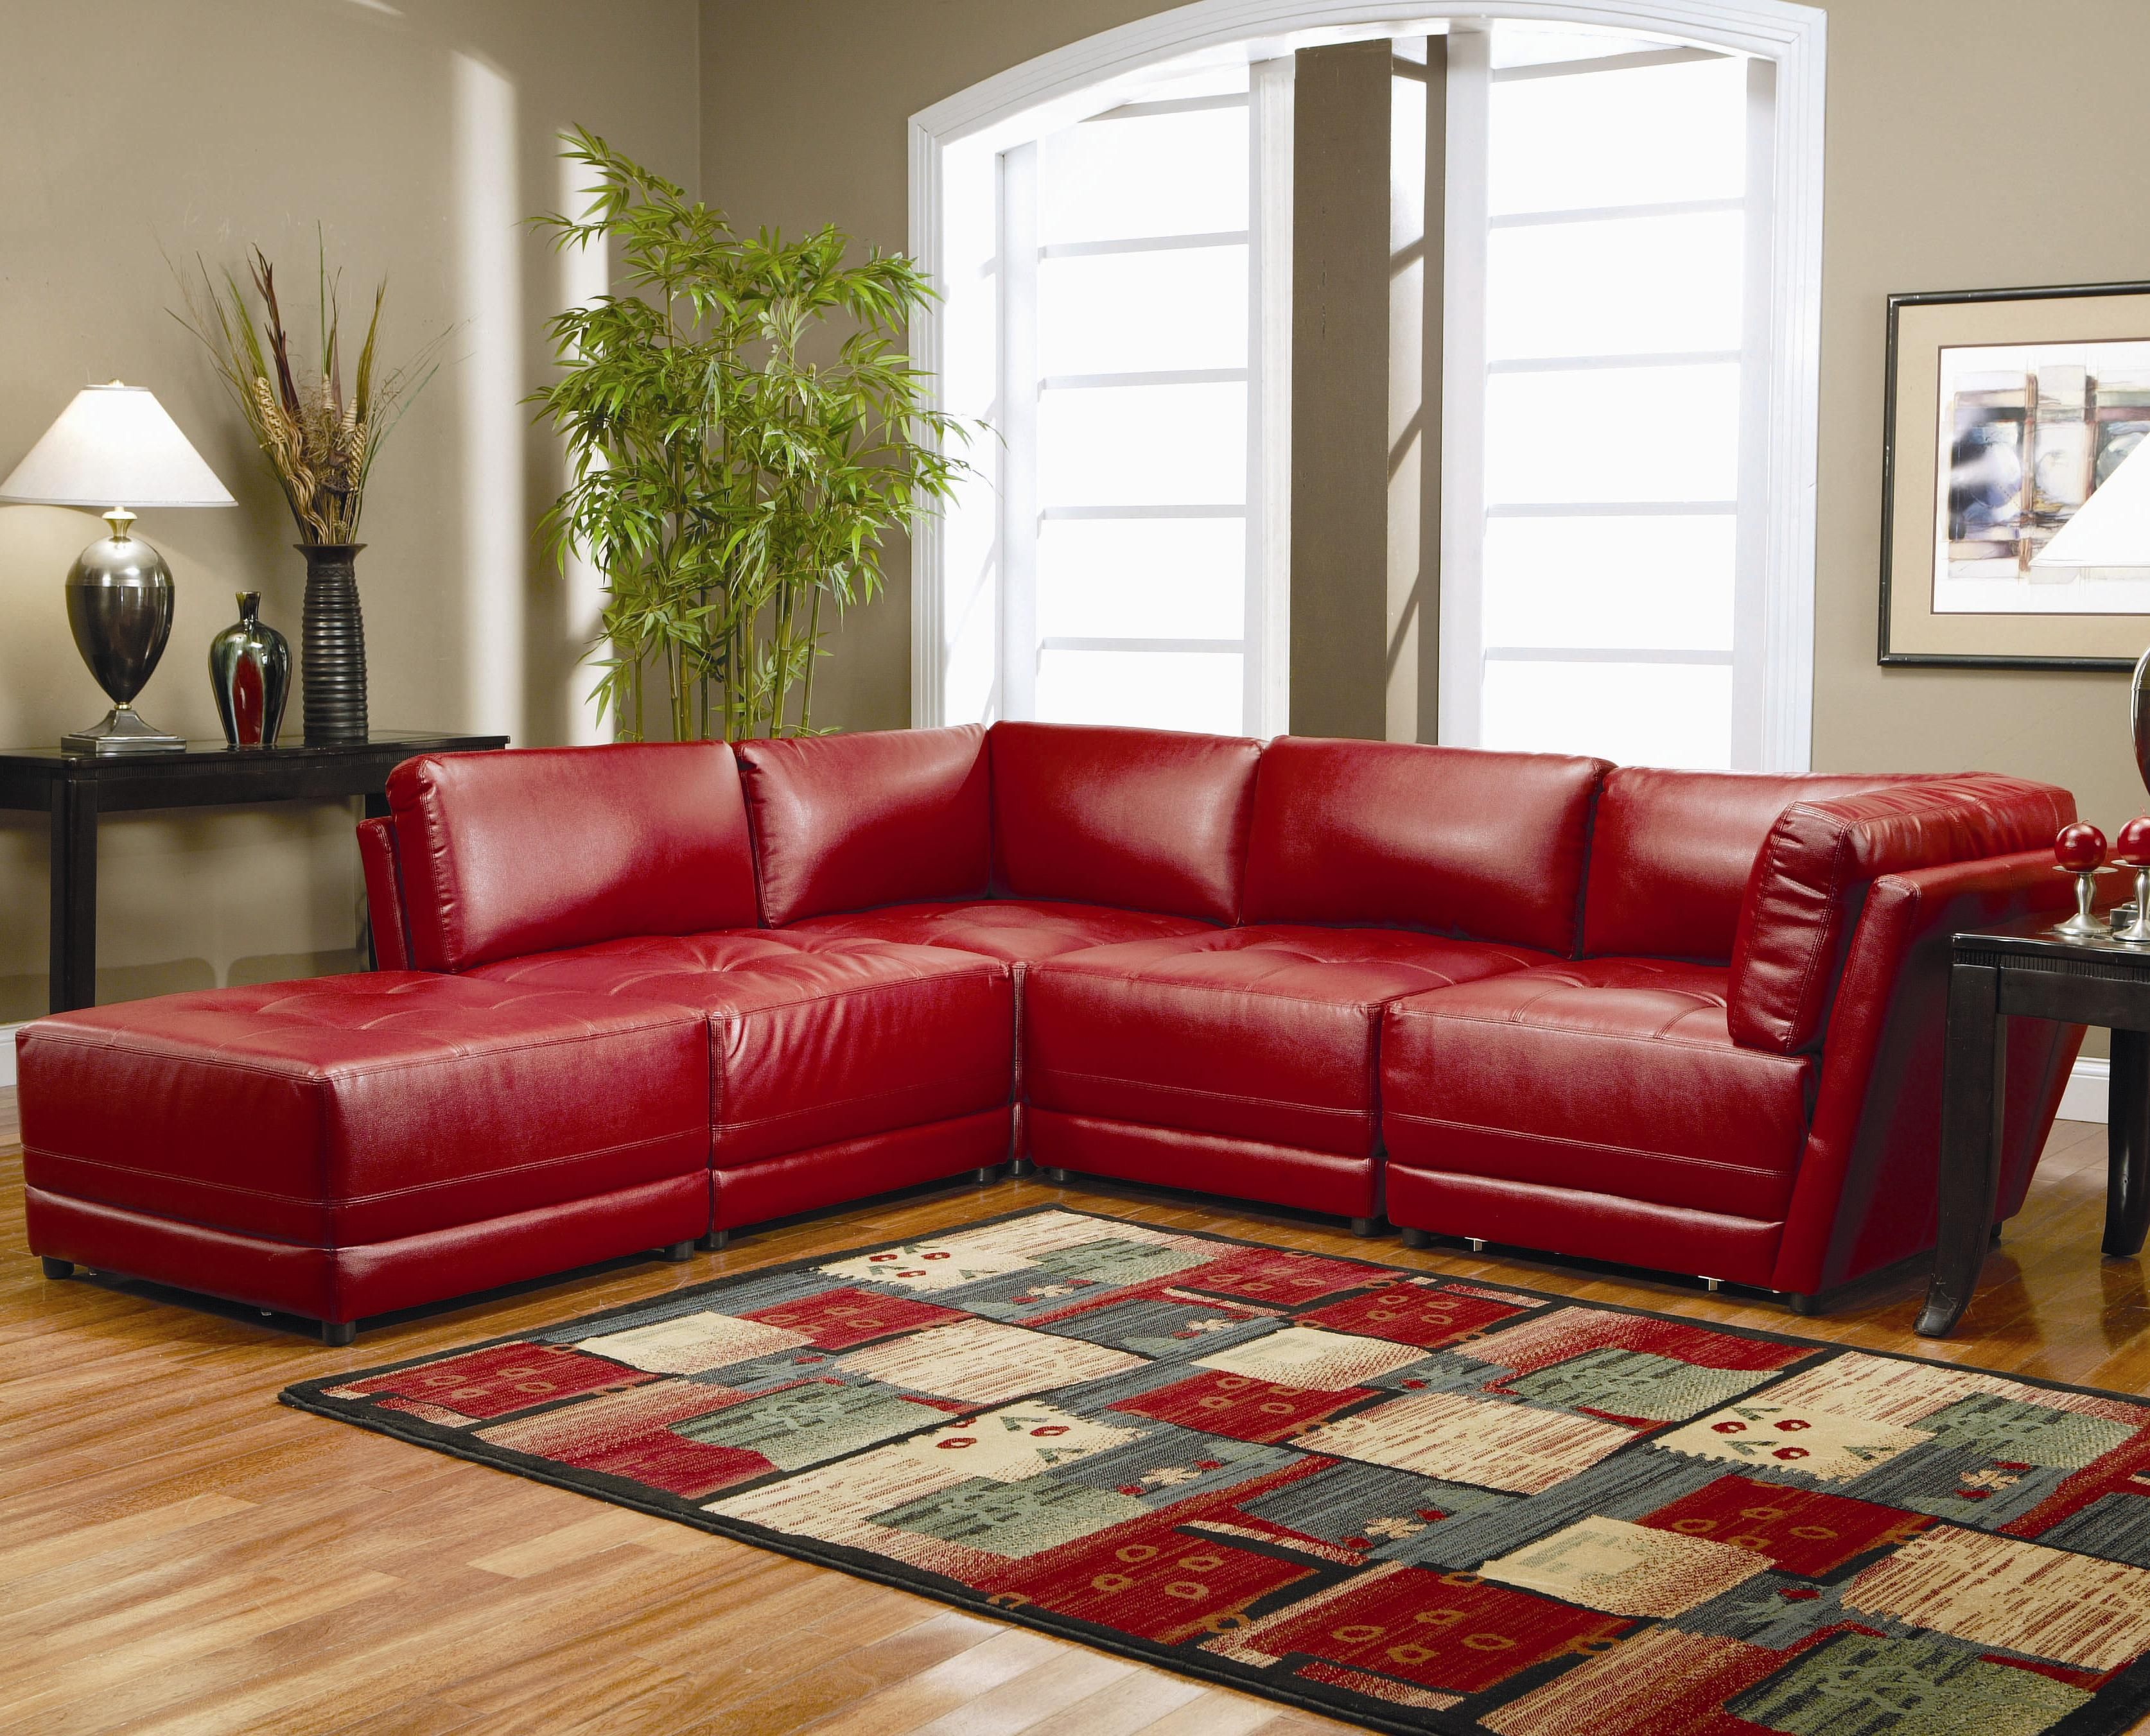 Decoration Ideas For Living Room With Red Couch